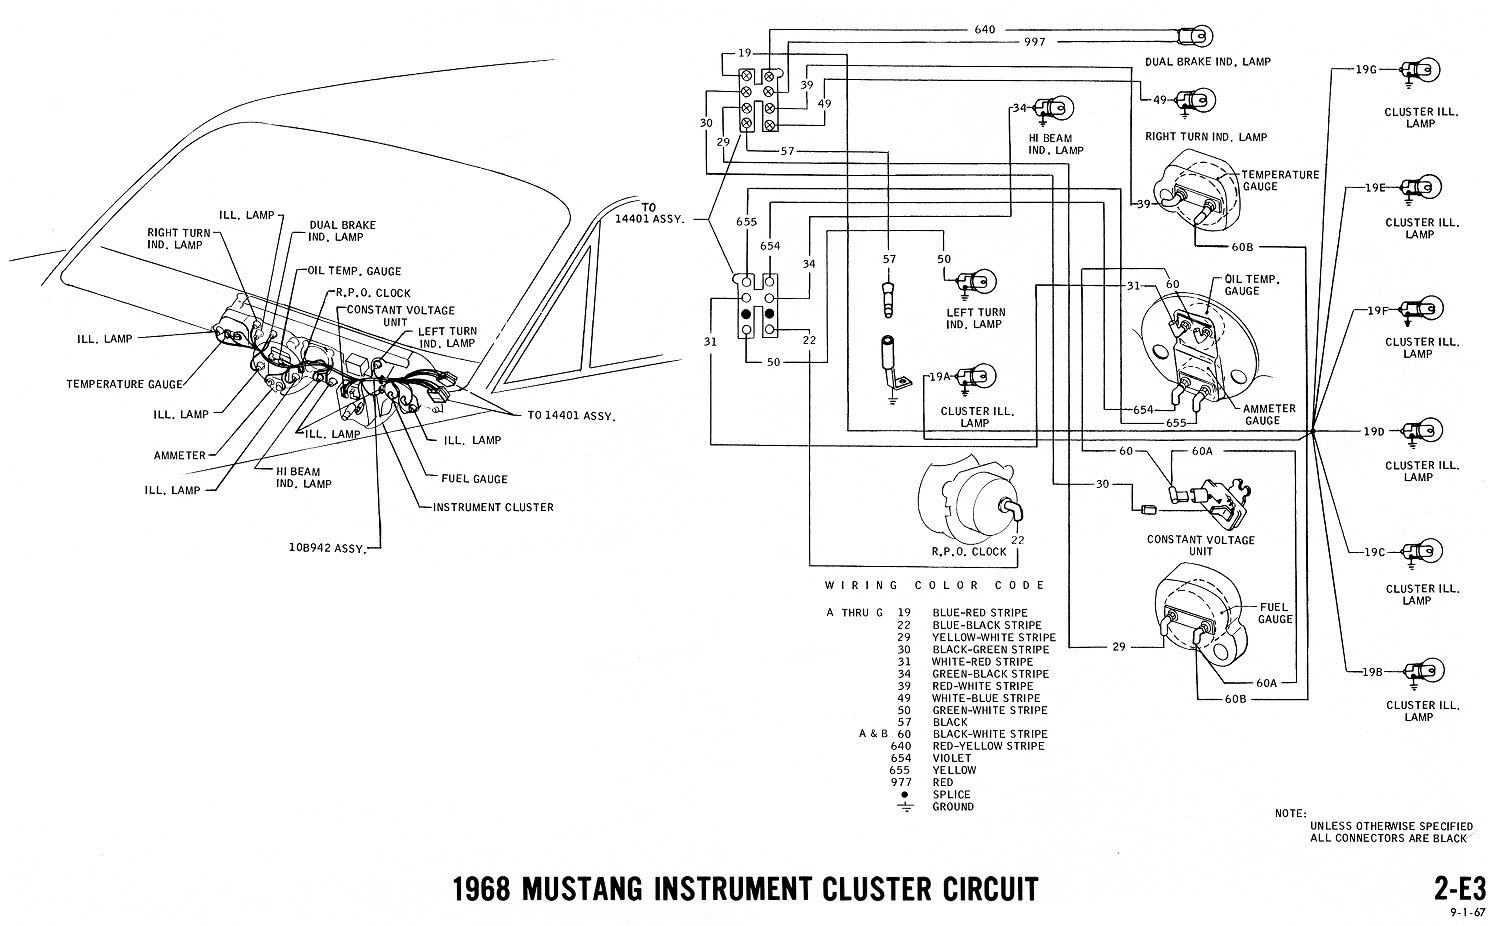 DIAGRAM] 67 Mustang Ammeter Wiring Diagram FULL Version HD Quality Wiring  Diagram - VENNDIAGRAMPLATYPUS.AEROPORTOLUCCATASSIGNANO.ITaeroportoluccatassignano.it